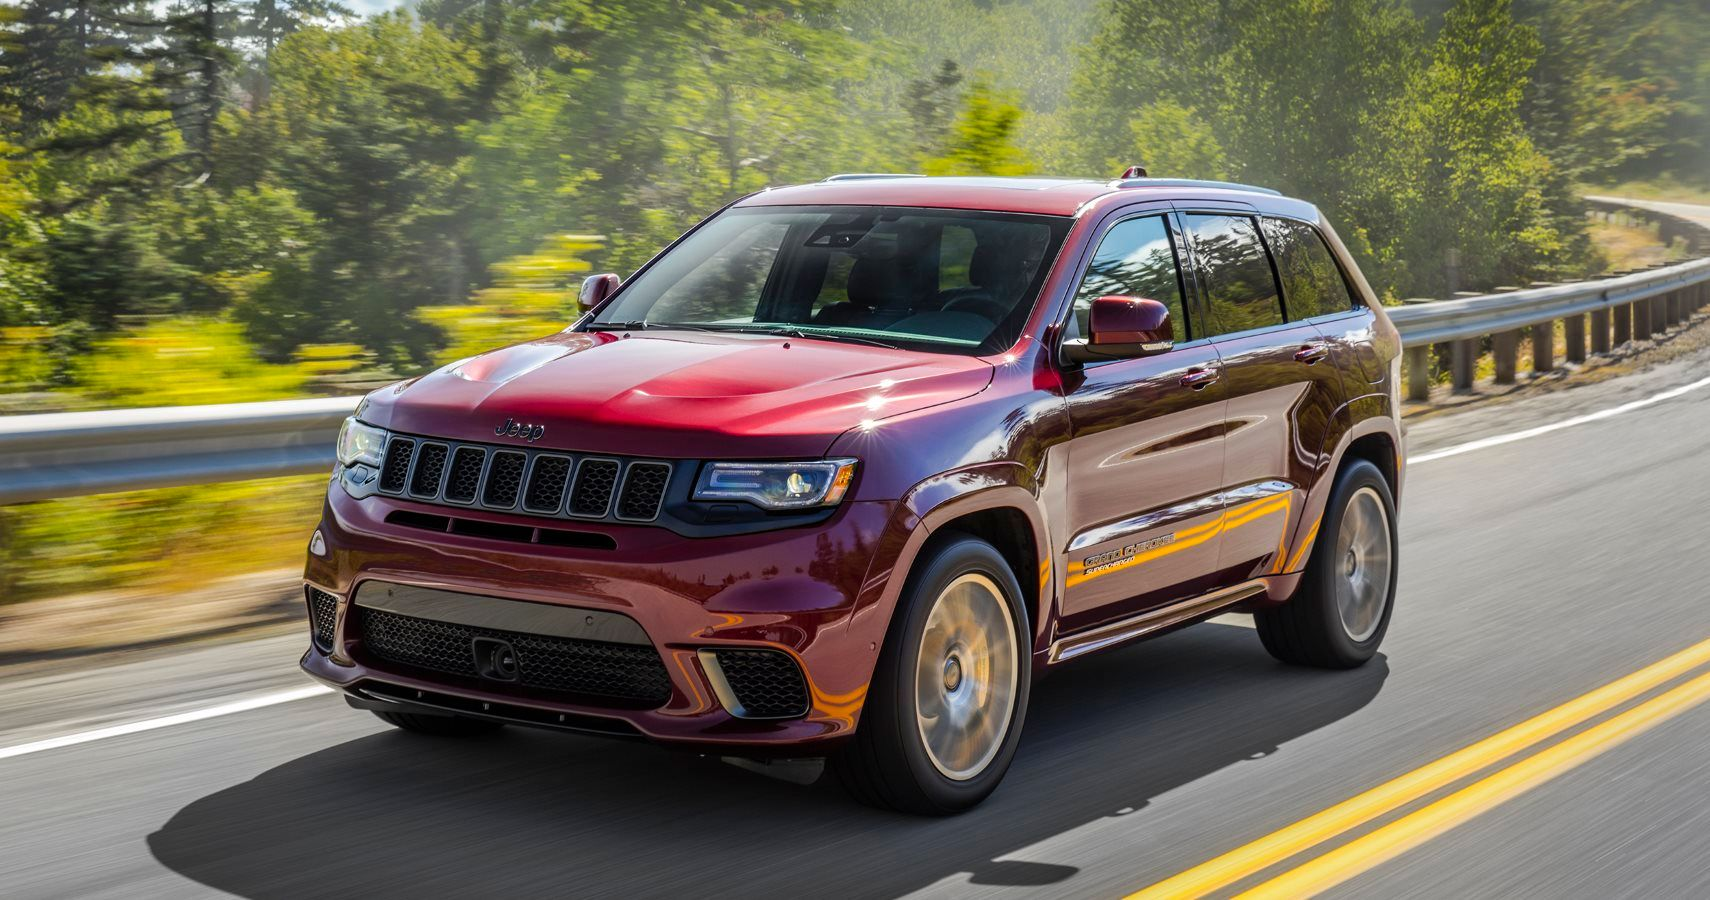 Jeep Grand Cherokee Trackhawk Review The Most Powerful Suv In The World